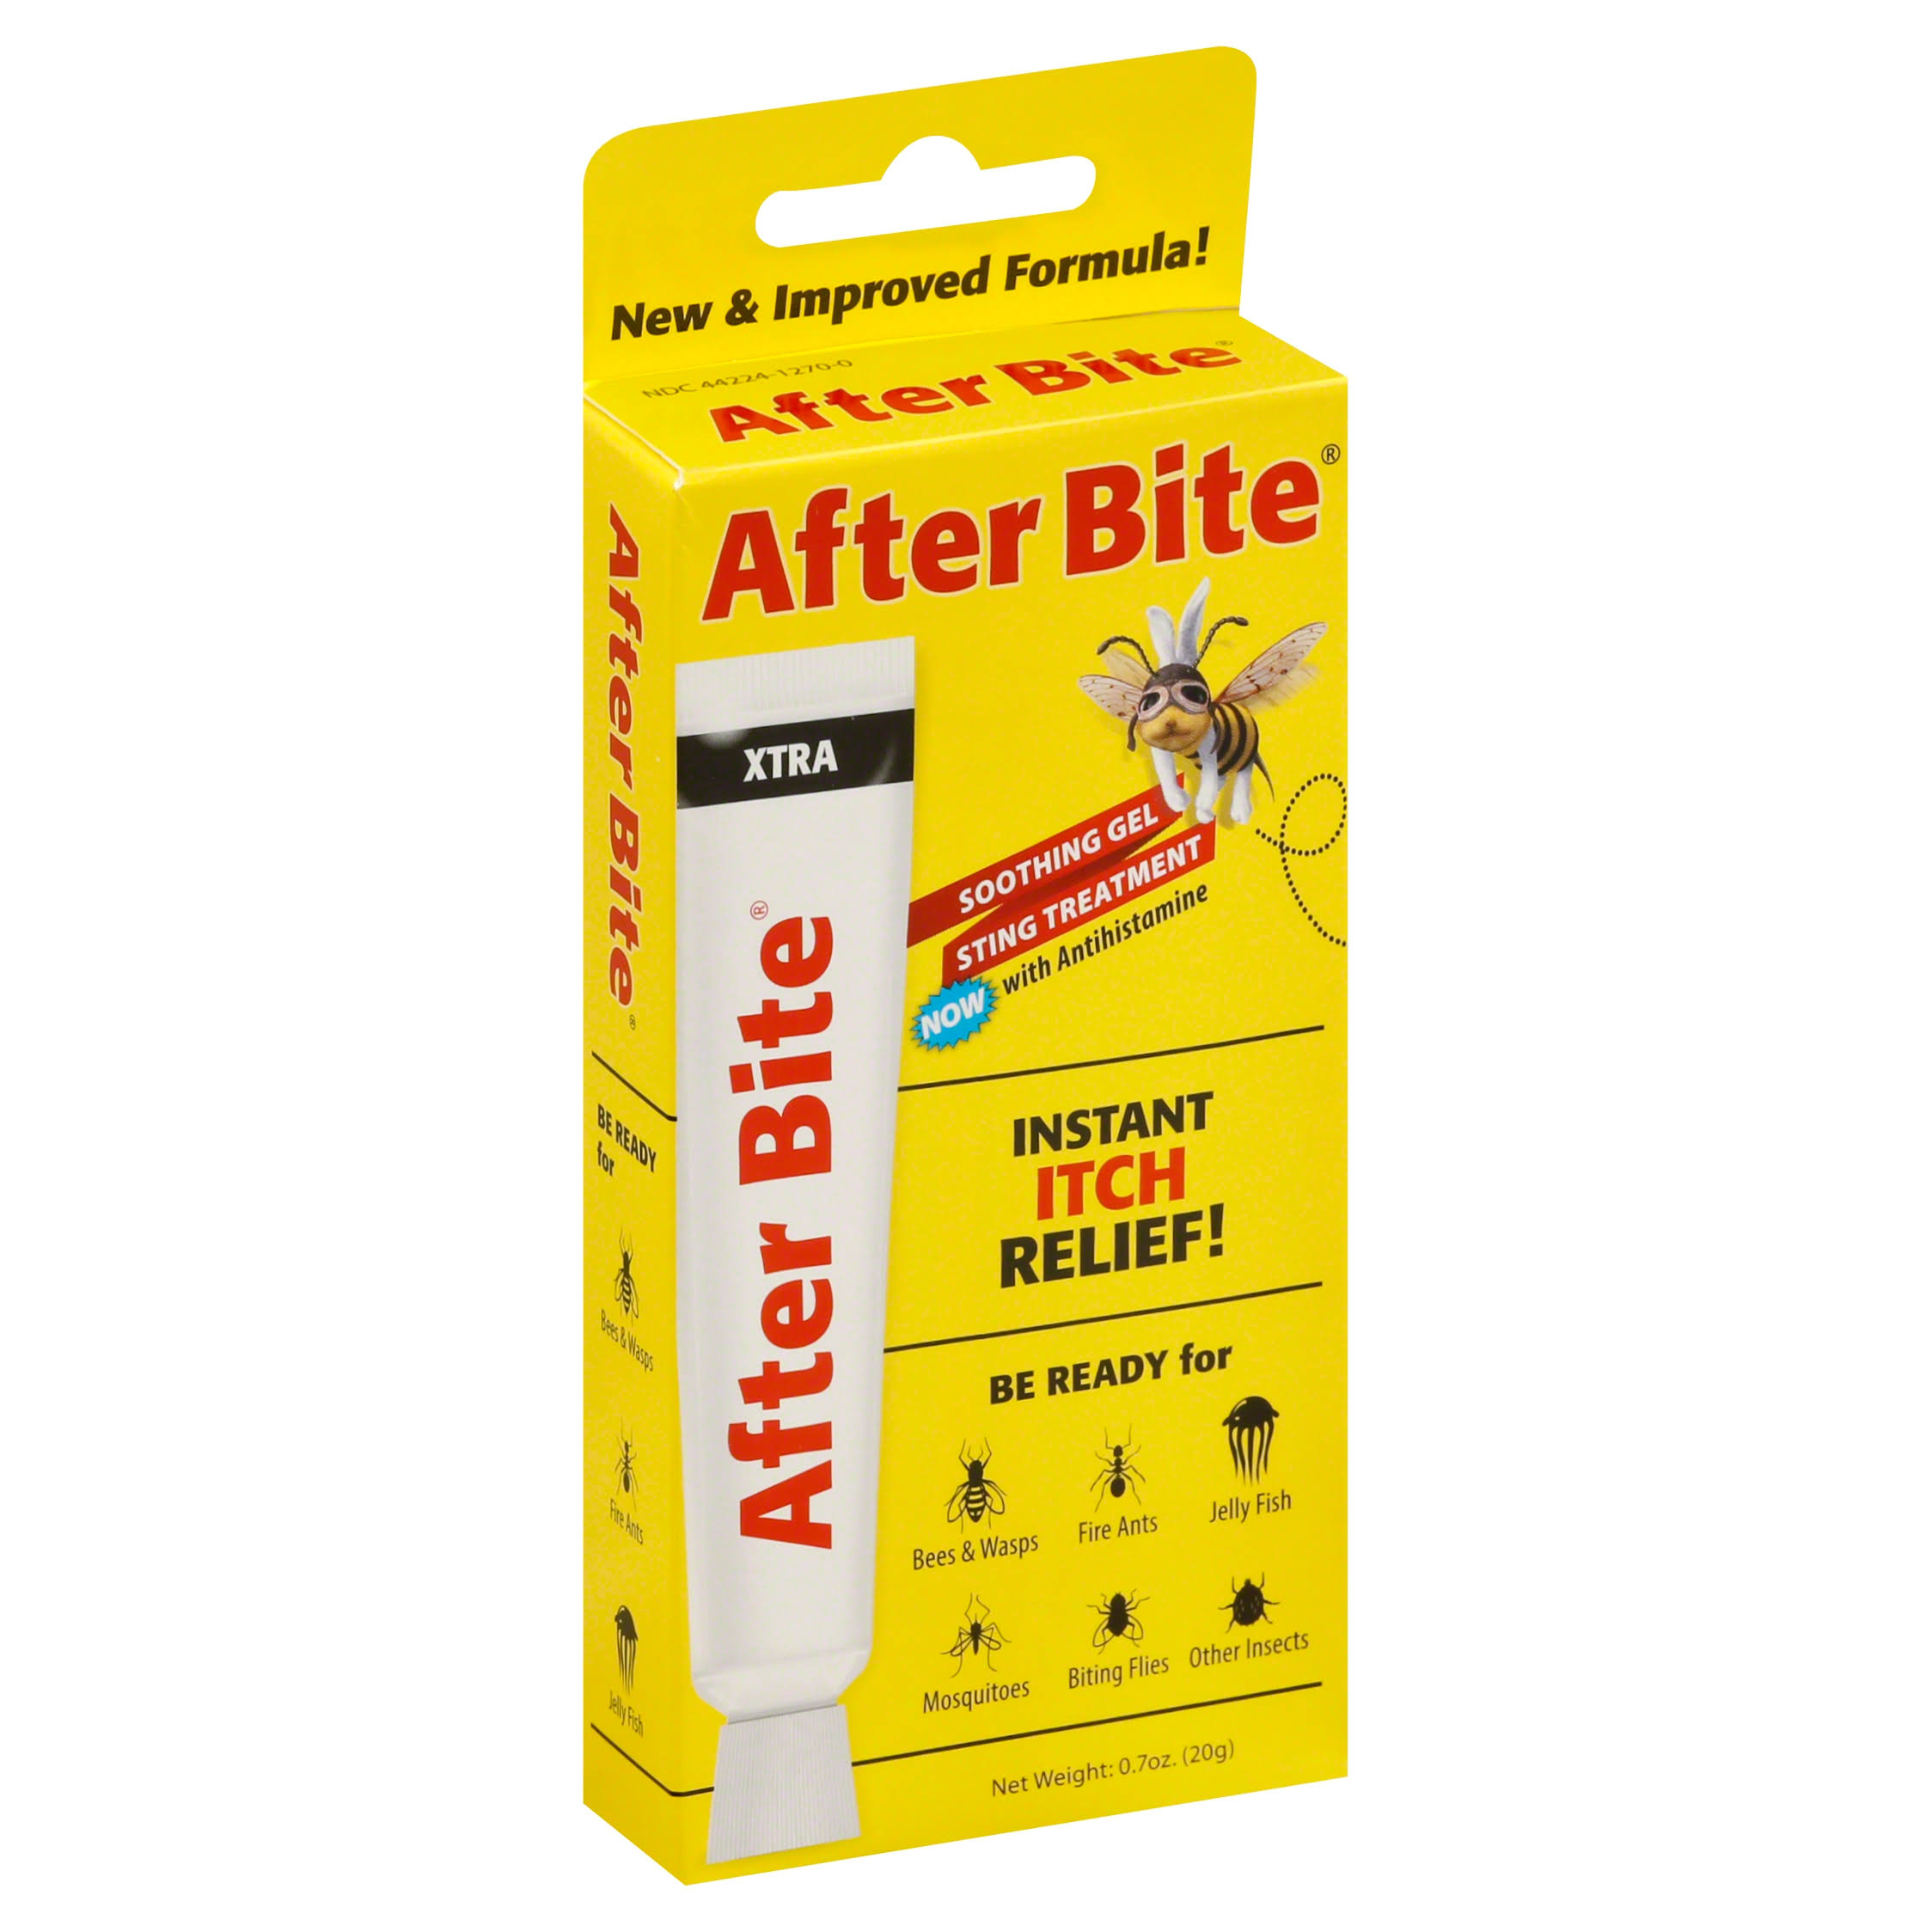 After Bite Fast Relief Itch Eraser Xtra Soothing Gel - 0.7oz